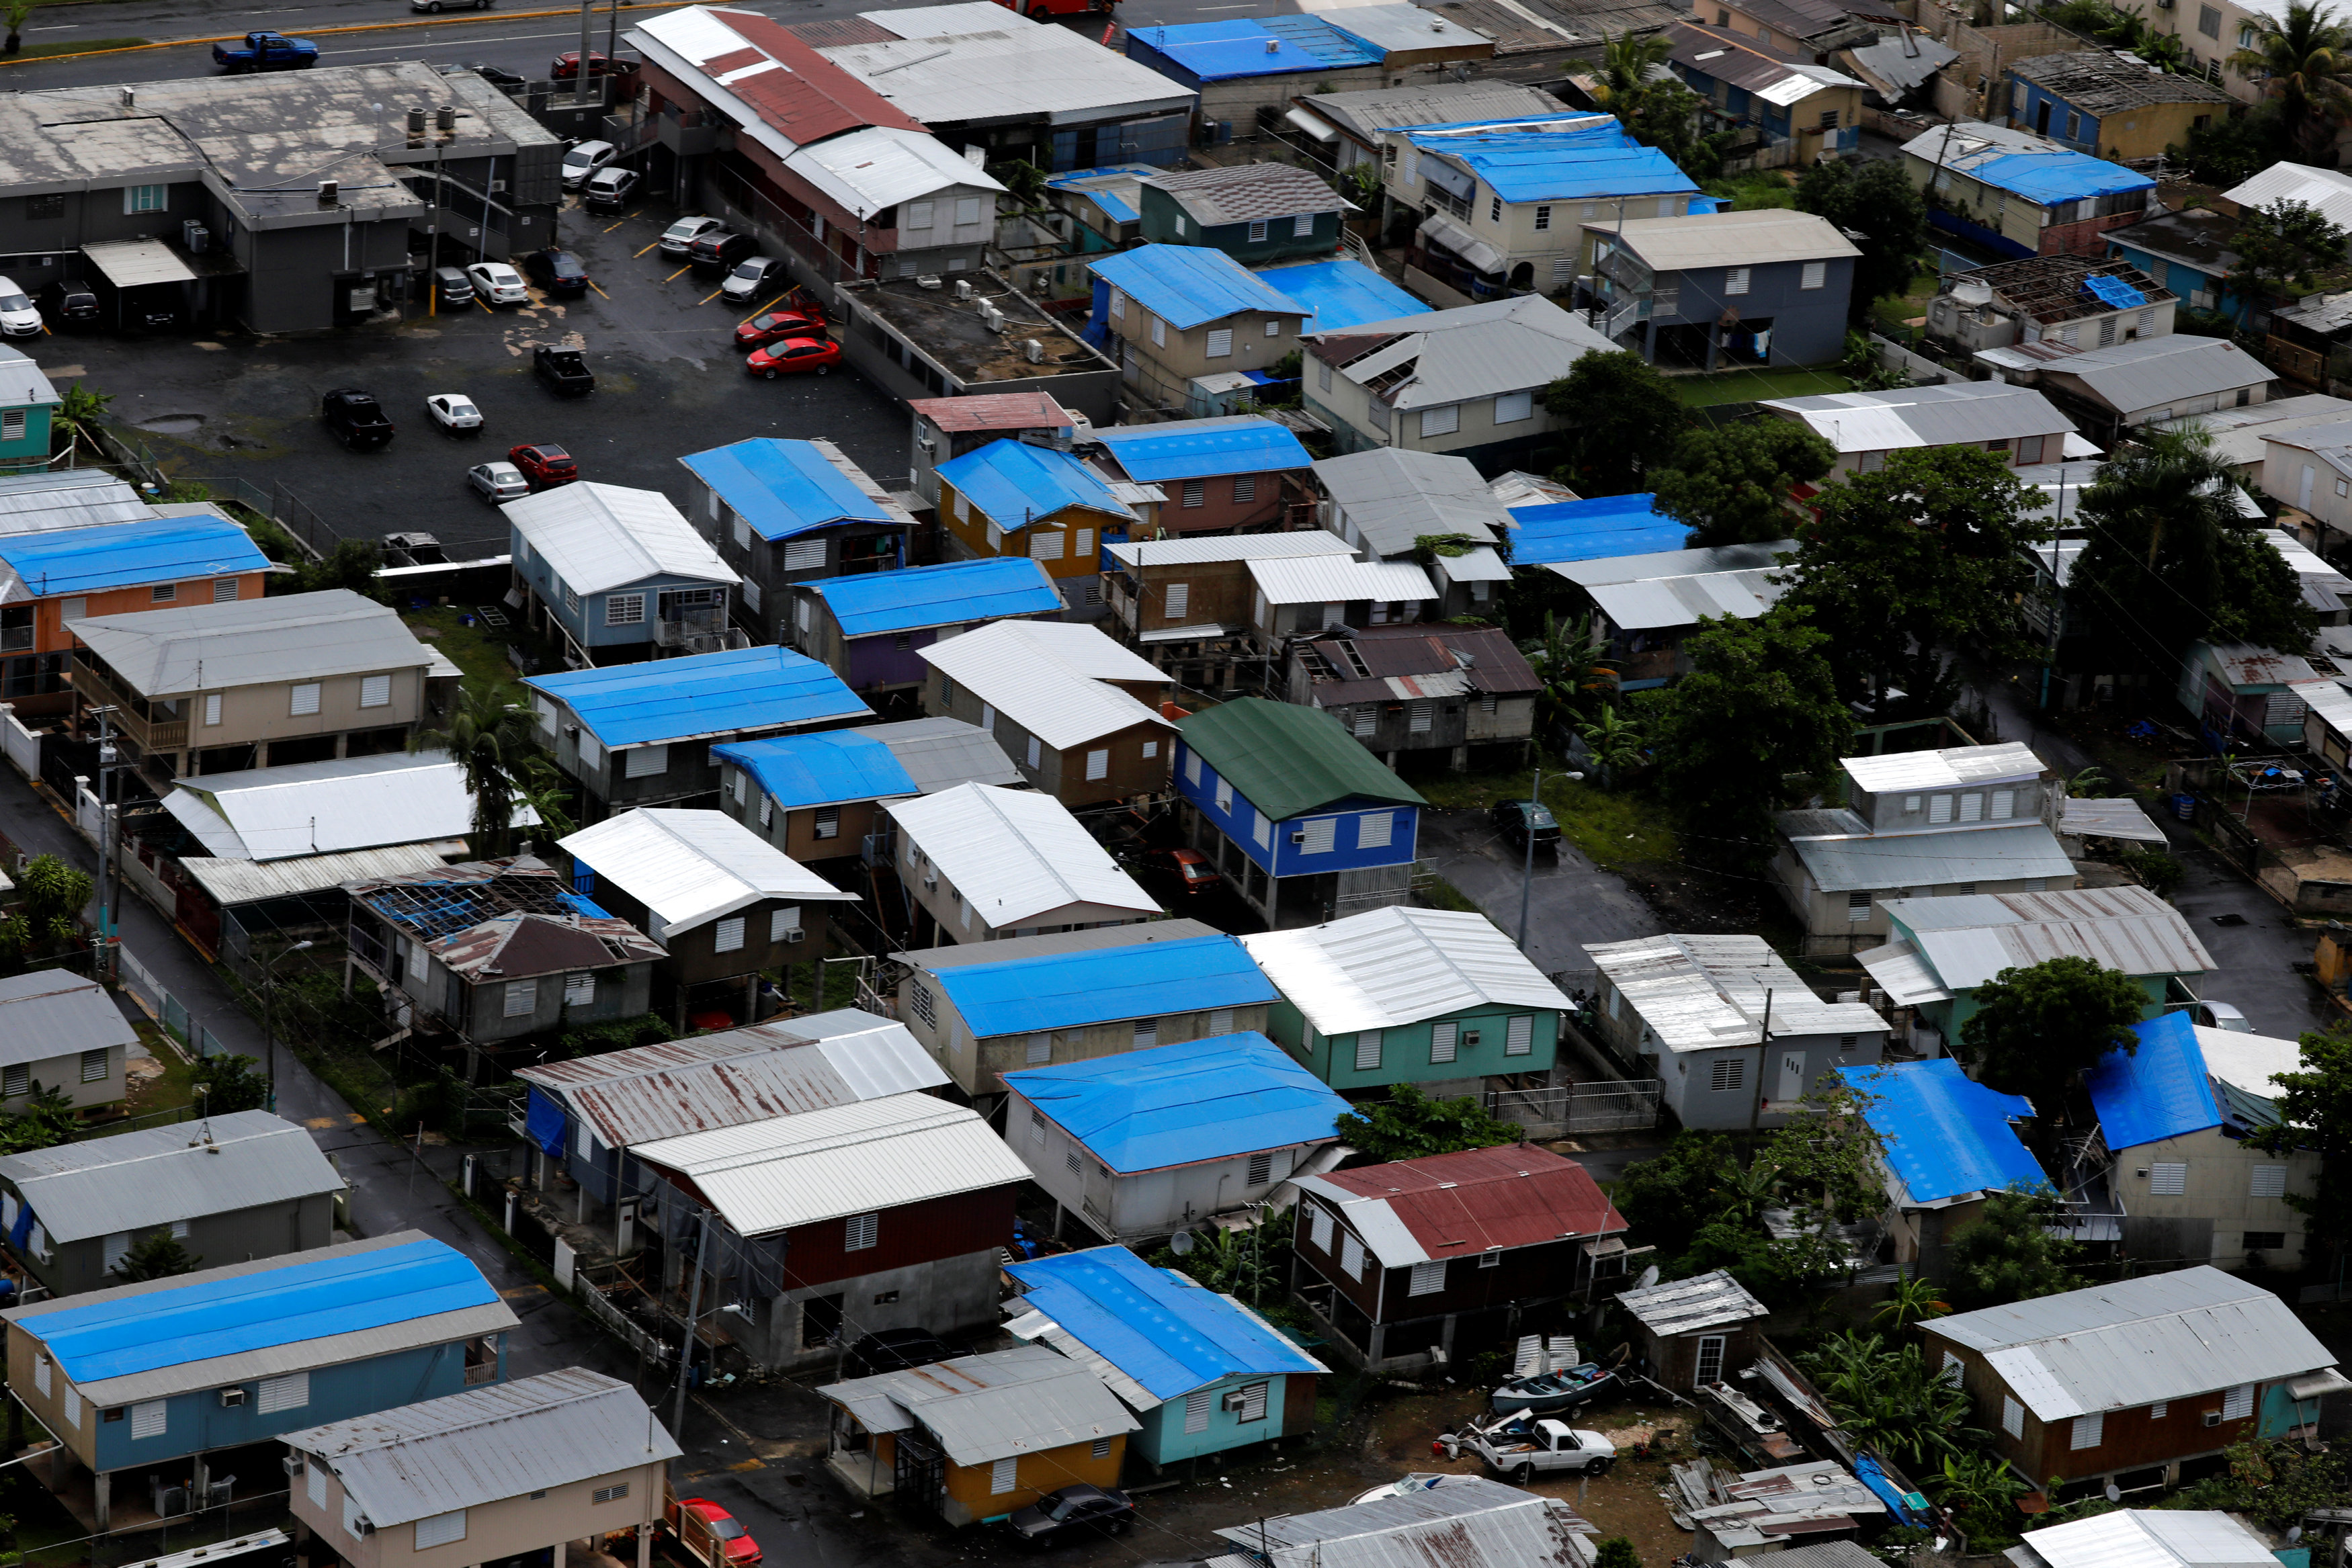 Plastic tarps over damaged roofs are seen on houses a year after Hurricane Maria devastated Puerto Rico in San Juan, Puerto Rico, September 18, 2018. Picture taken September 18, 2018. REUTERS/Carlos Barria